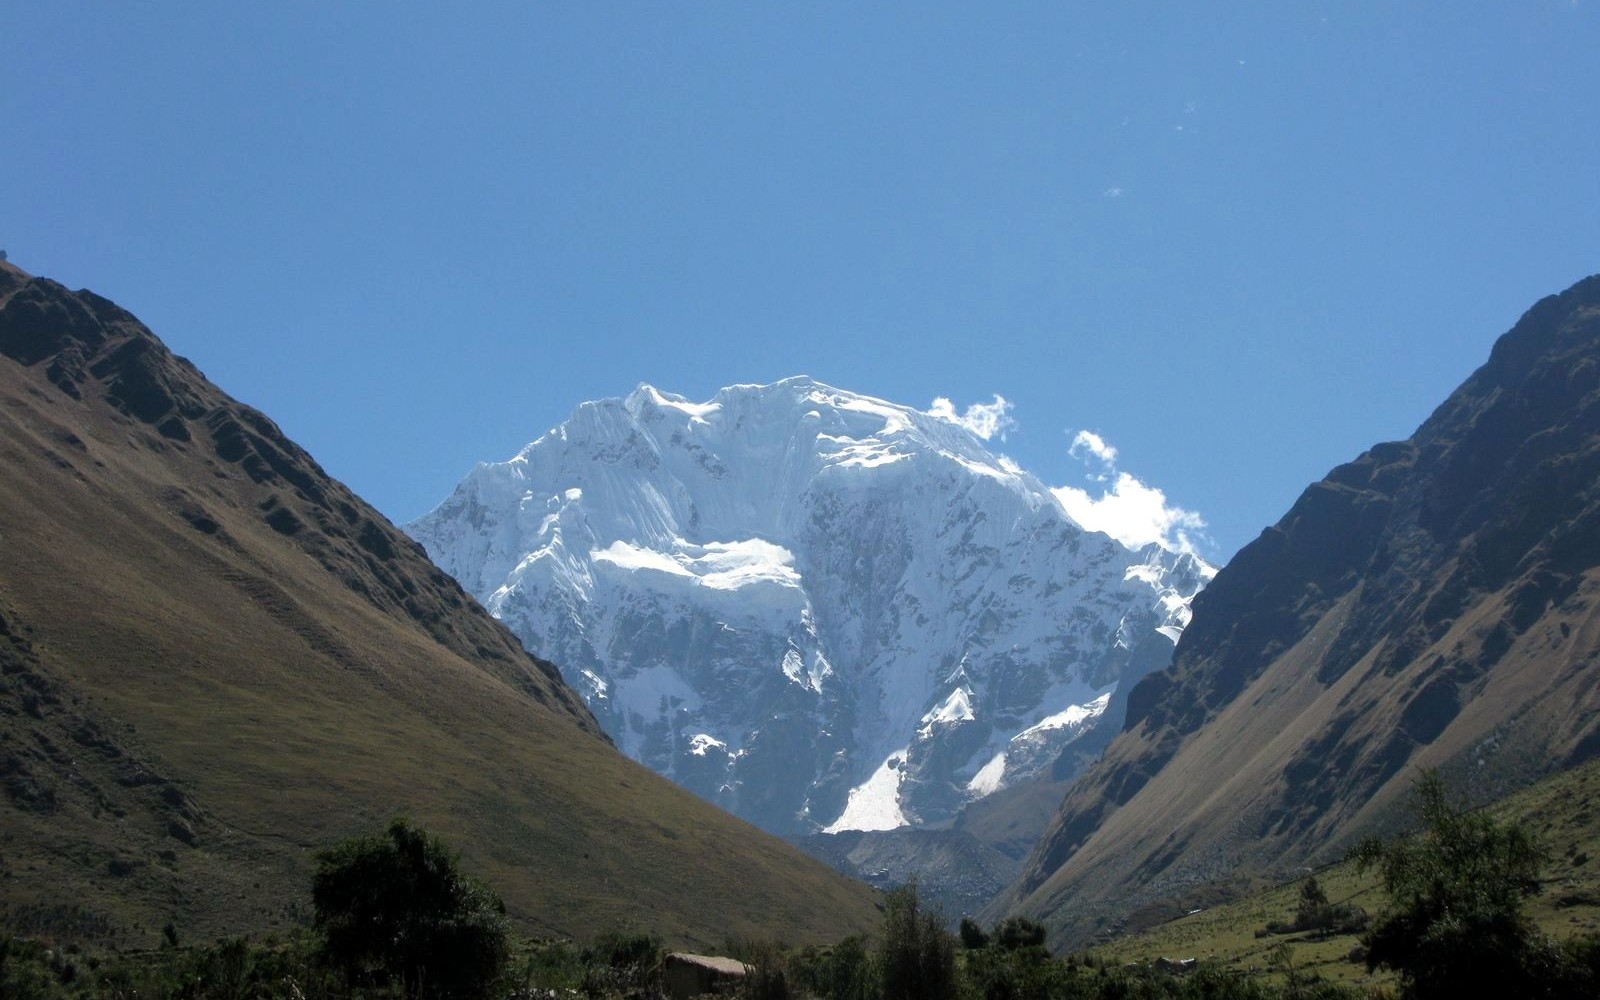 Bronchitis and Beauty: Salkantay to Macchu Picchu